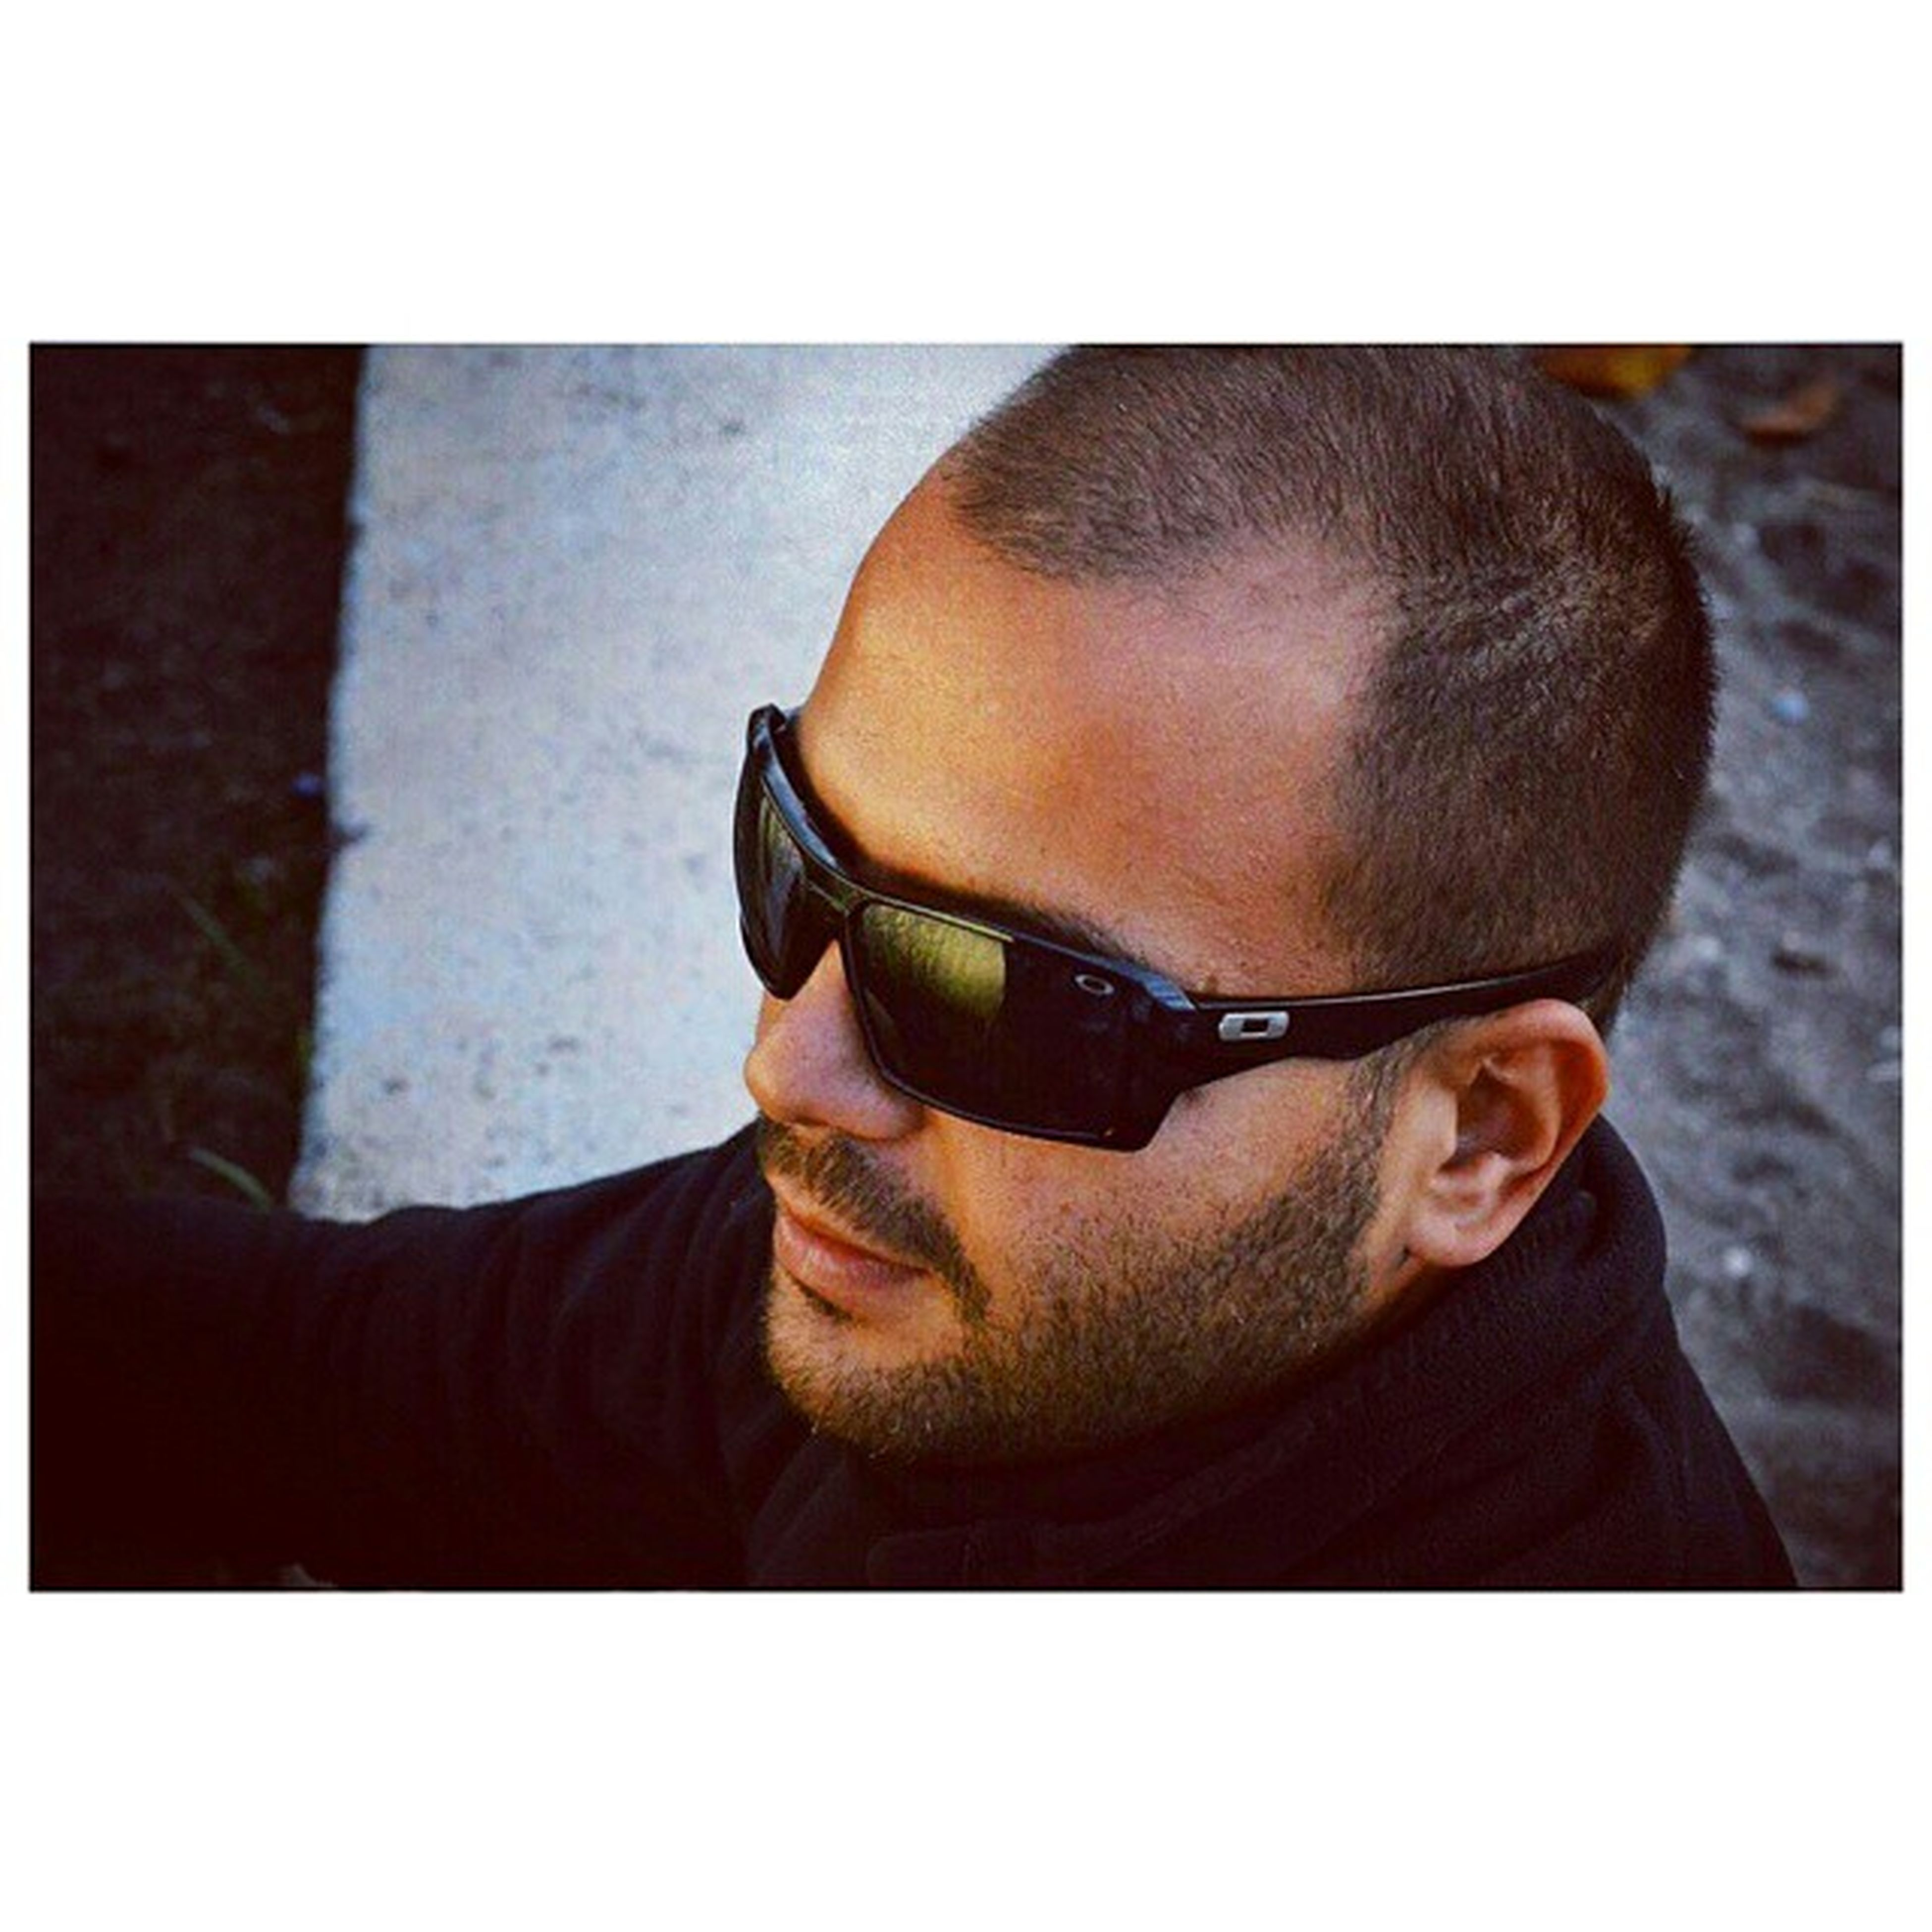 transfer print, lifestyles, young adult, young men, auto post production filter, looking at camera, person, leisure activity, sunglasses, portrait, headshot, front view, casual clothing, mid adult, mid adult men, close-up, head and shoulders, men